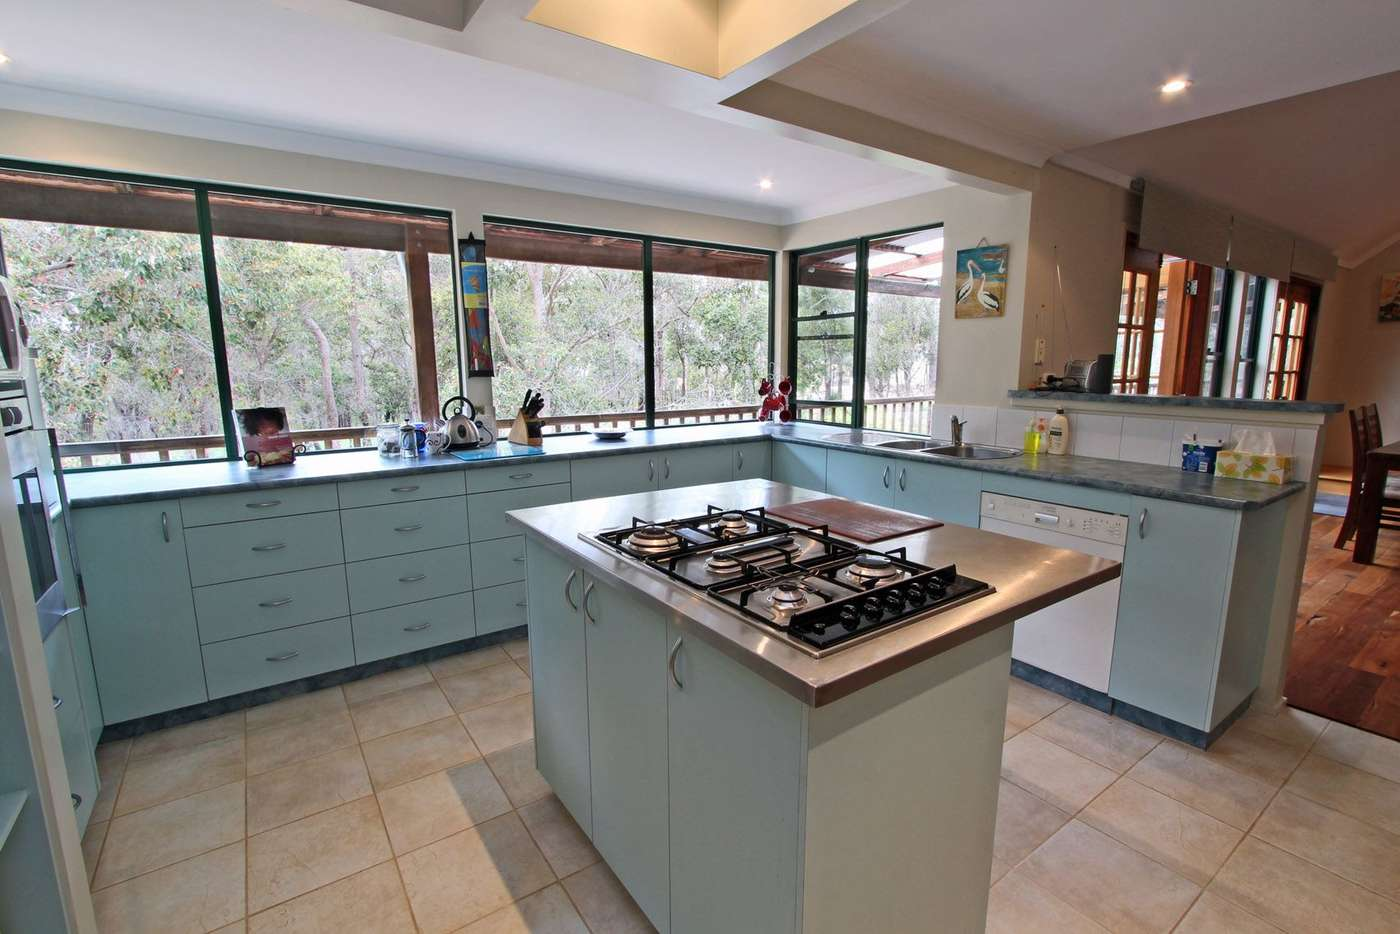 Seventh view of Homely house listing, 2 Braidwood Elbow, Denmark WA 6333